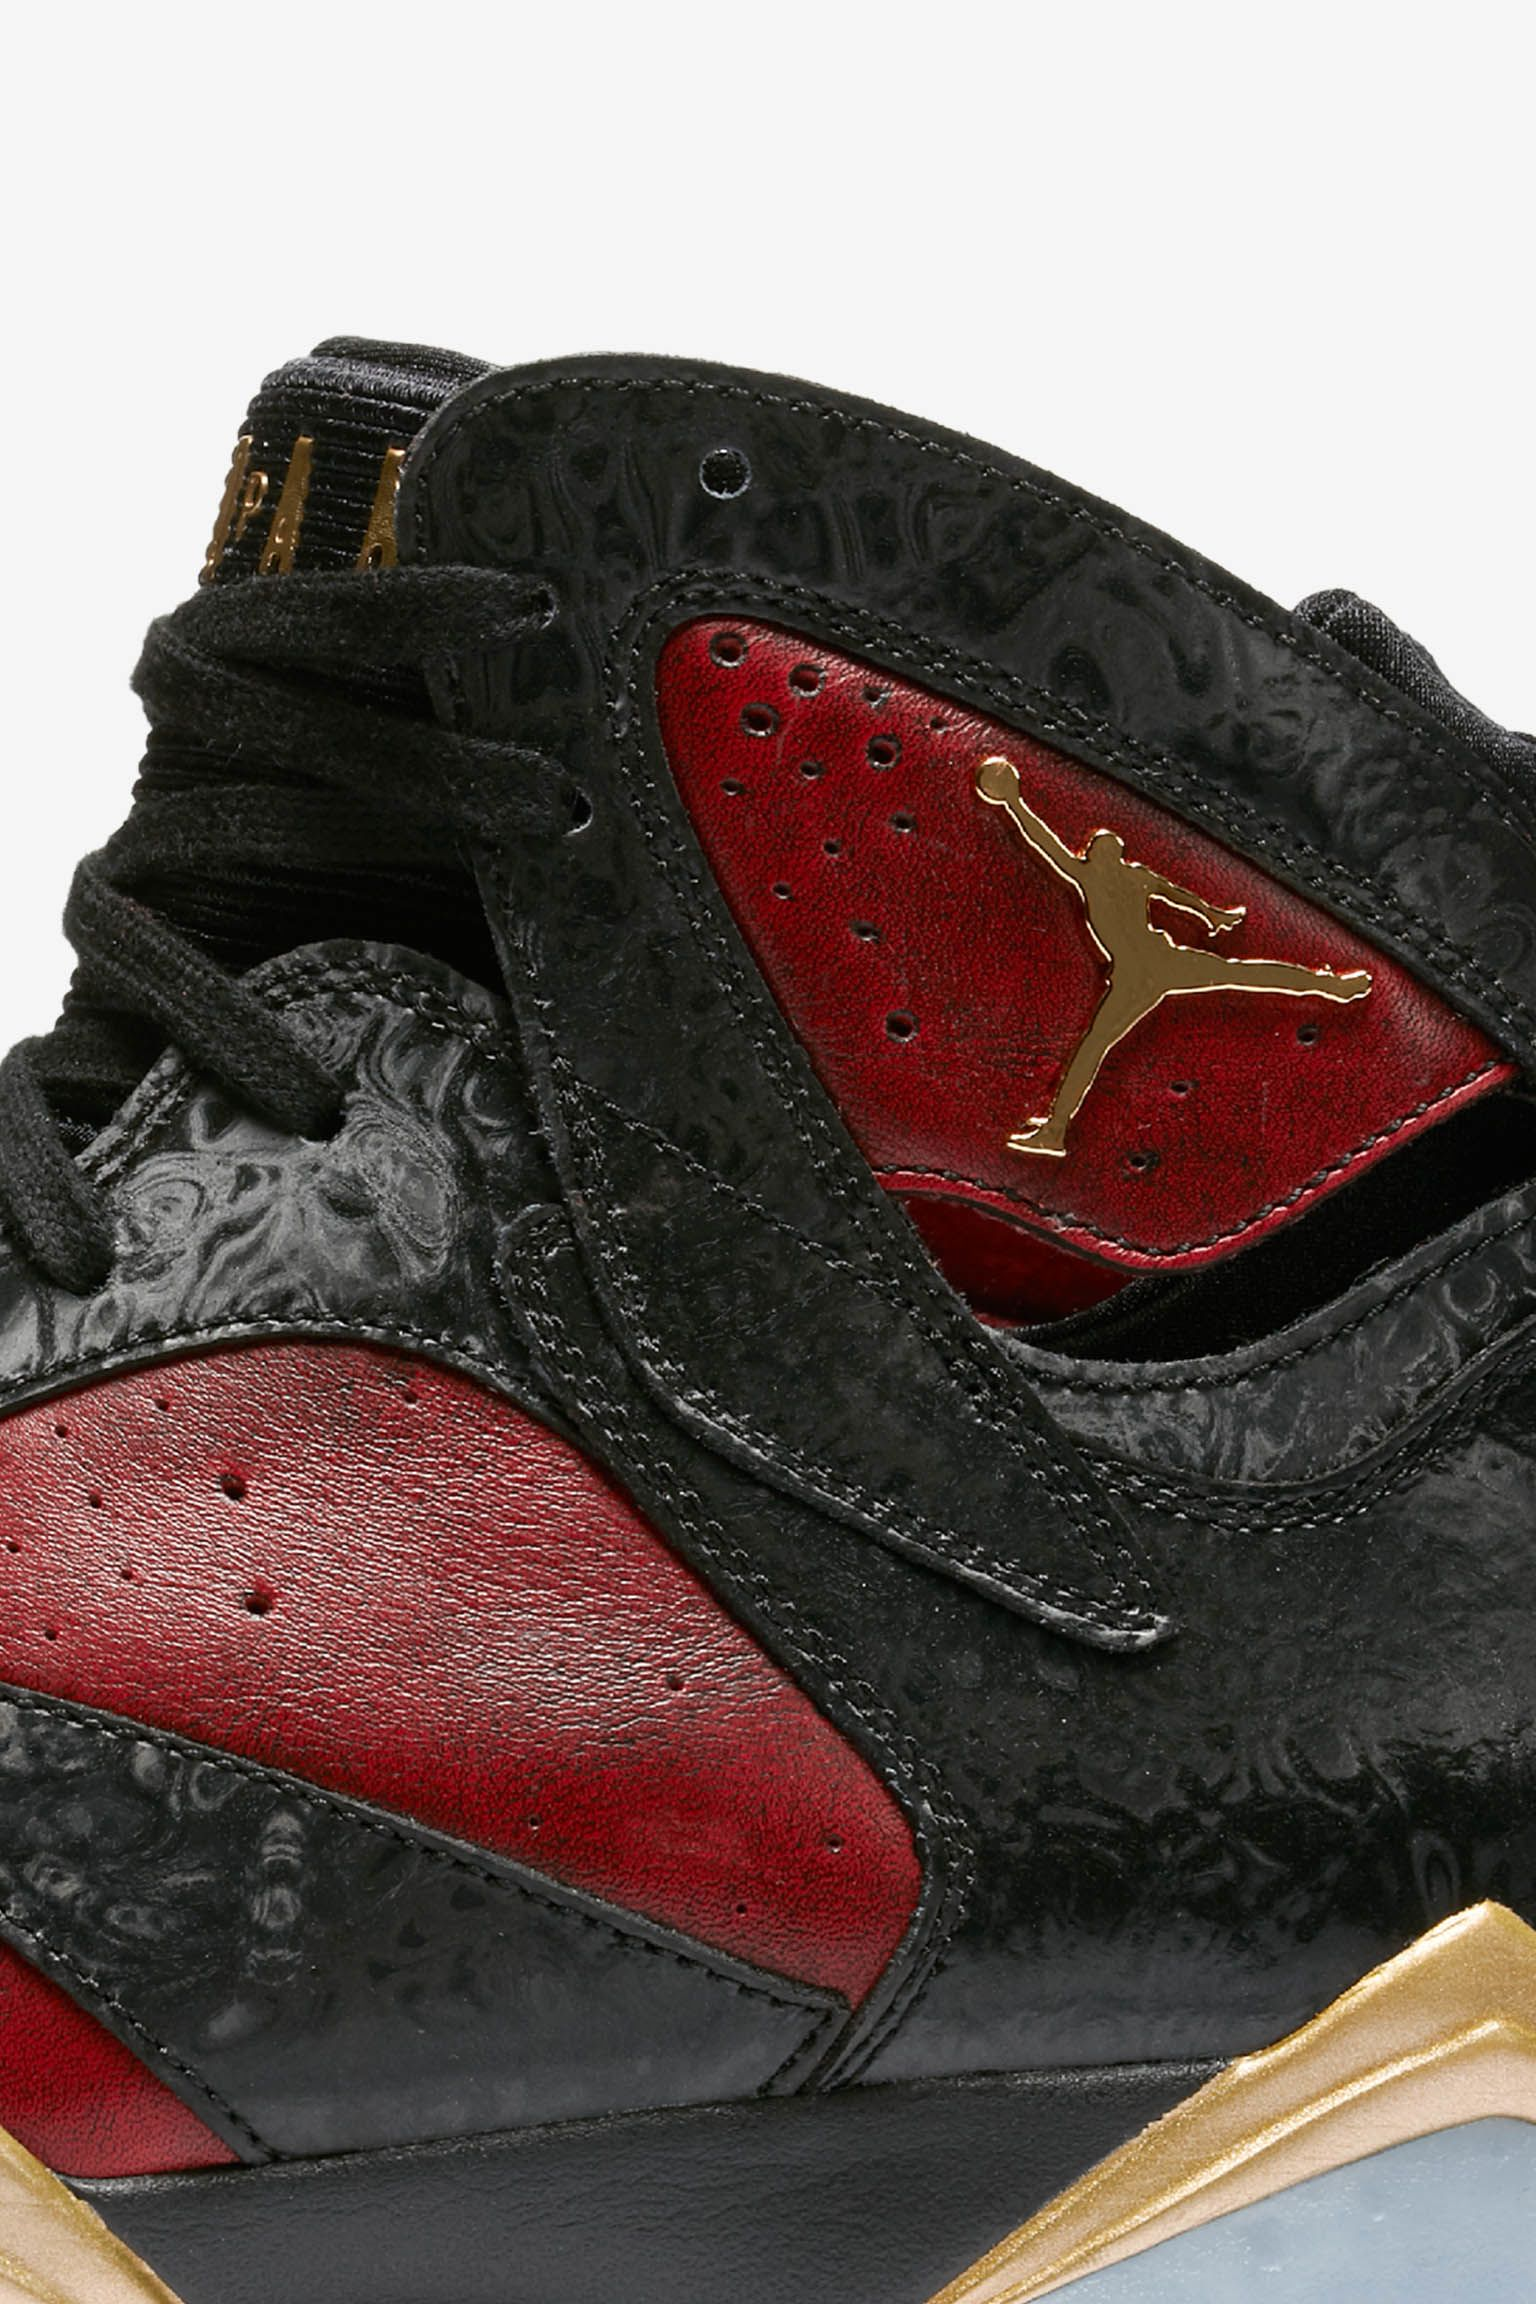 Air Jordan 7 Retro Doernbecher 'Black & University Red' Release Date